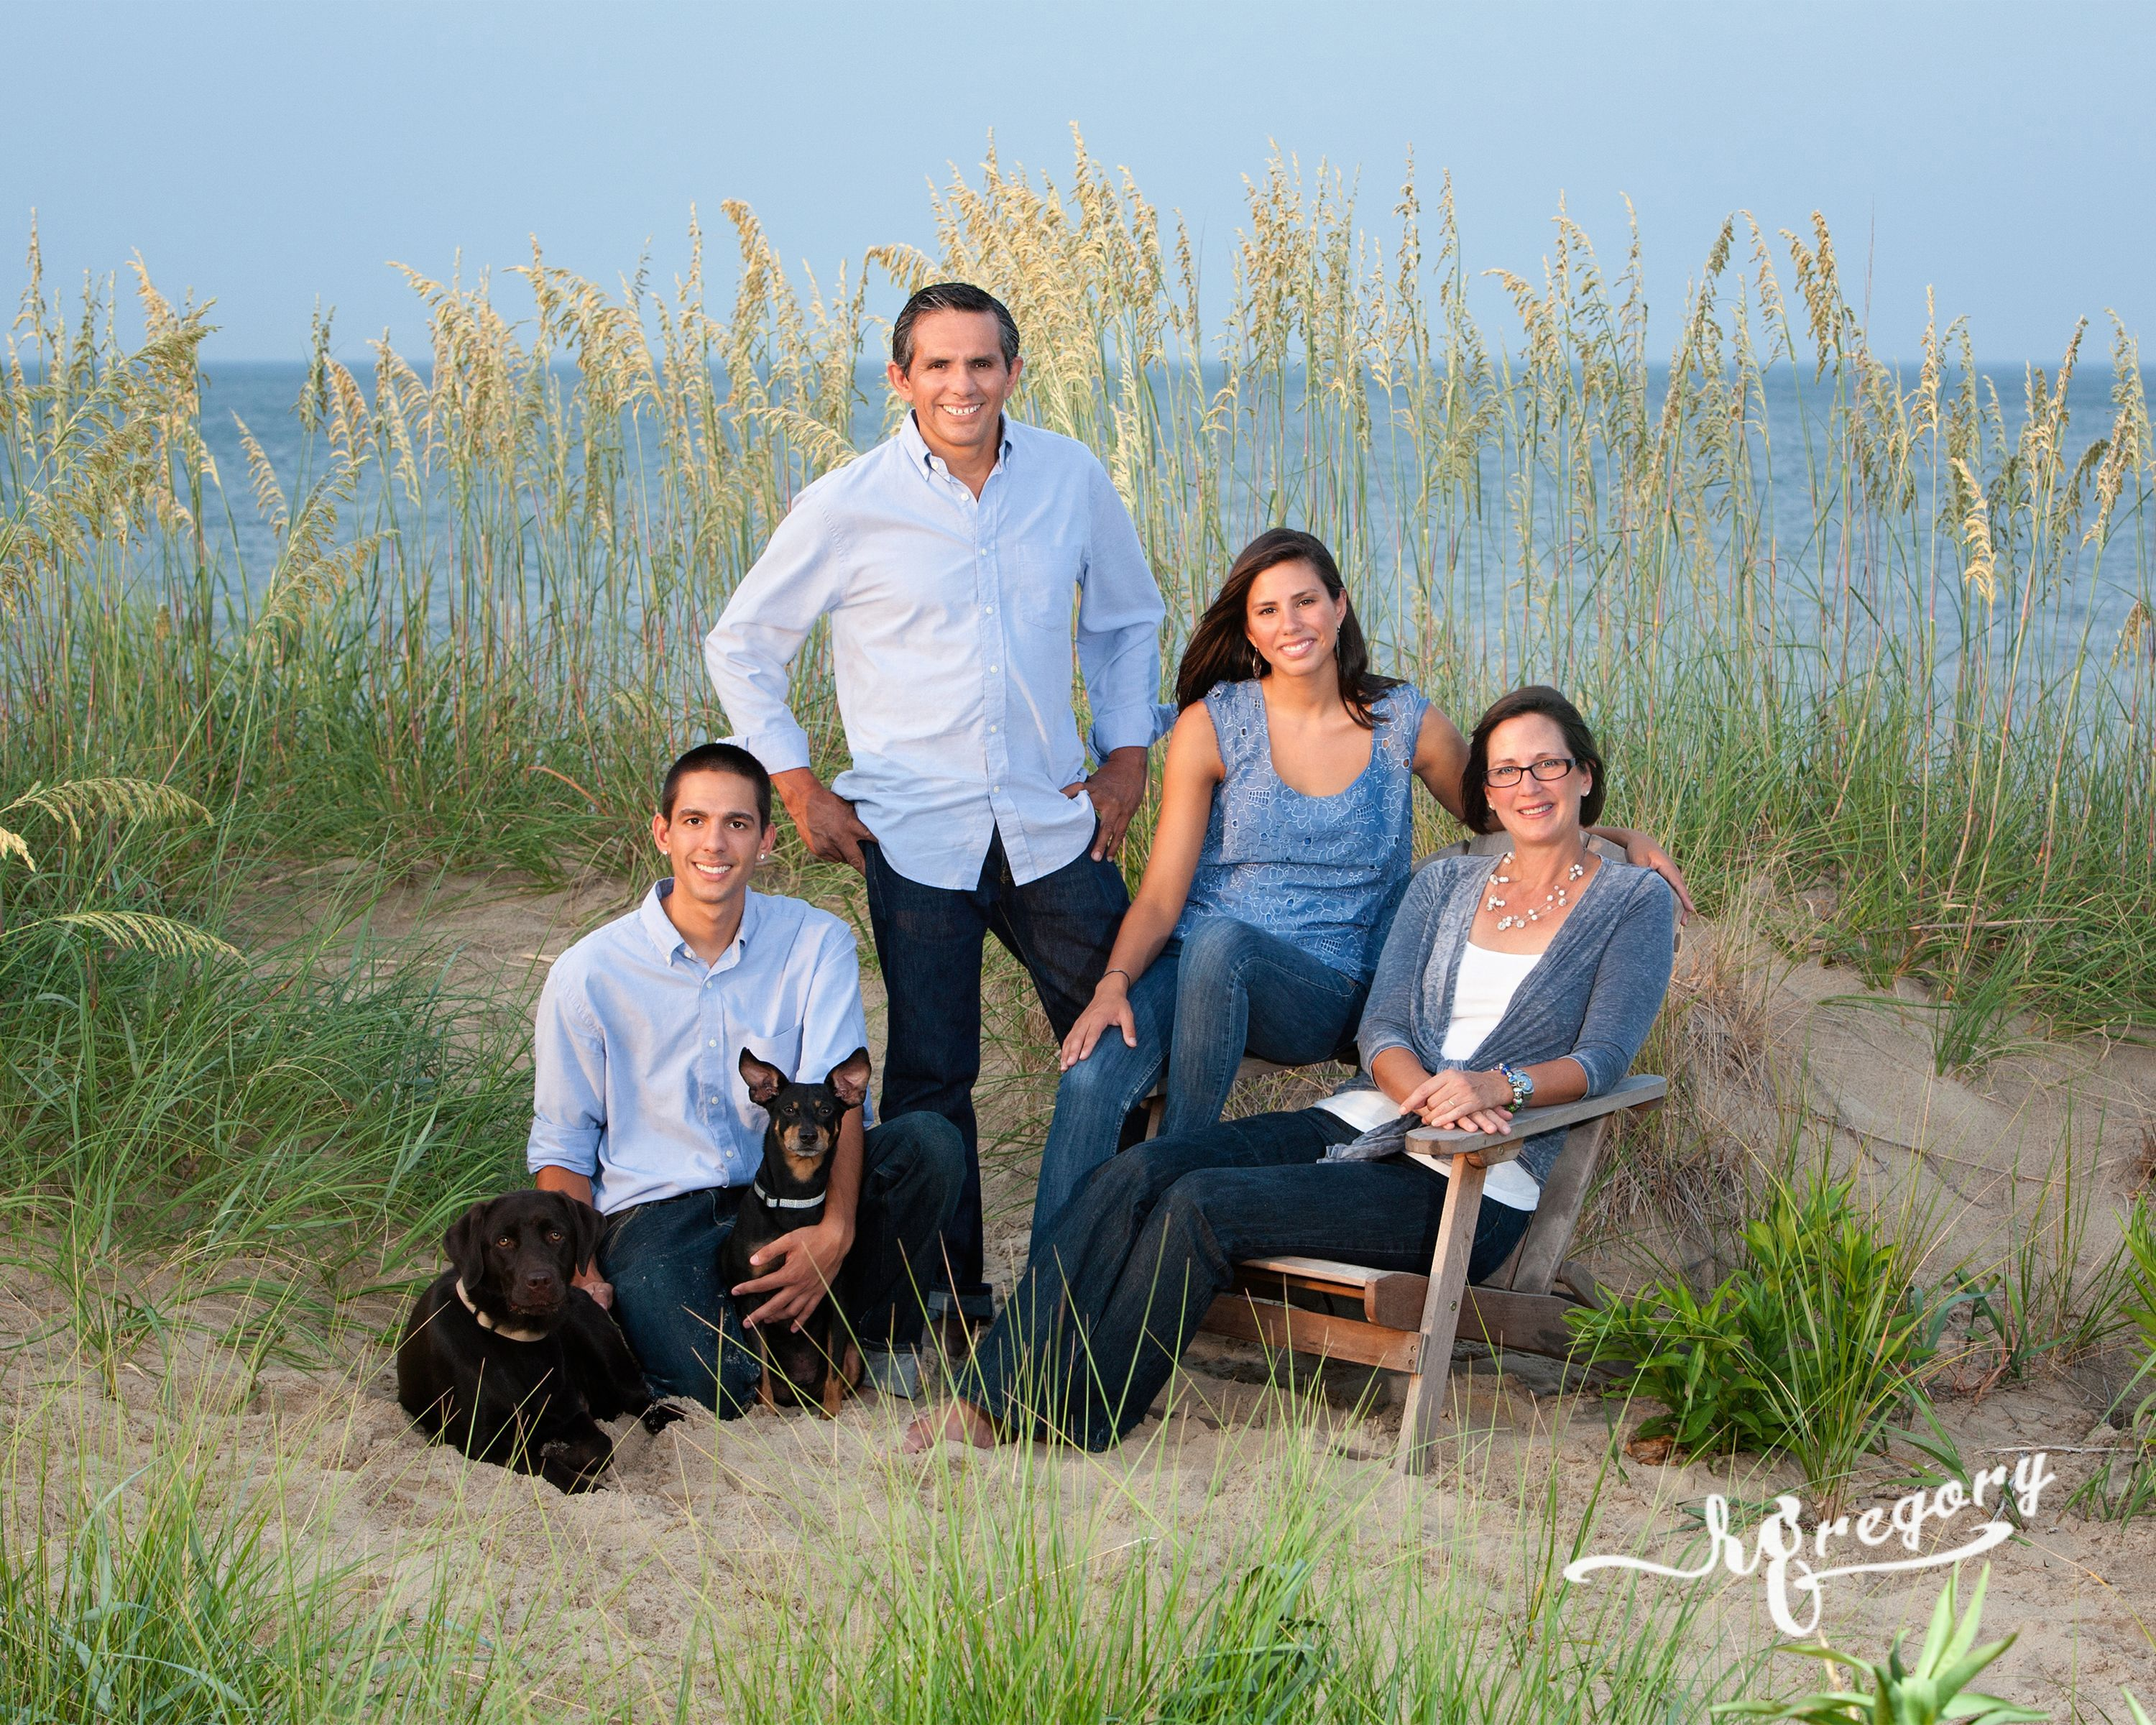 Family Portrait Photo beach